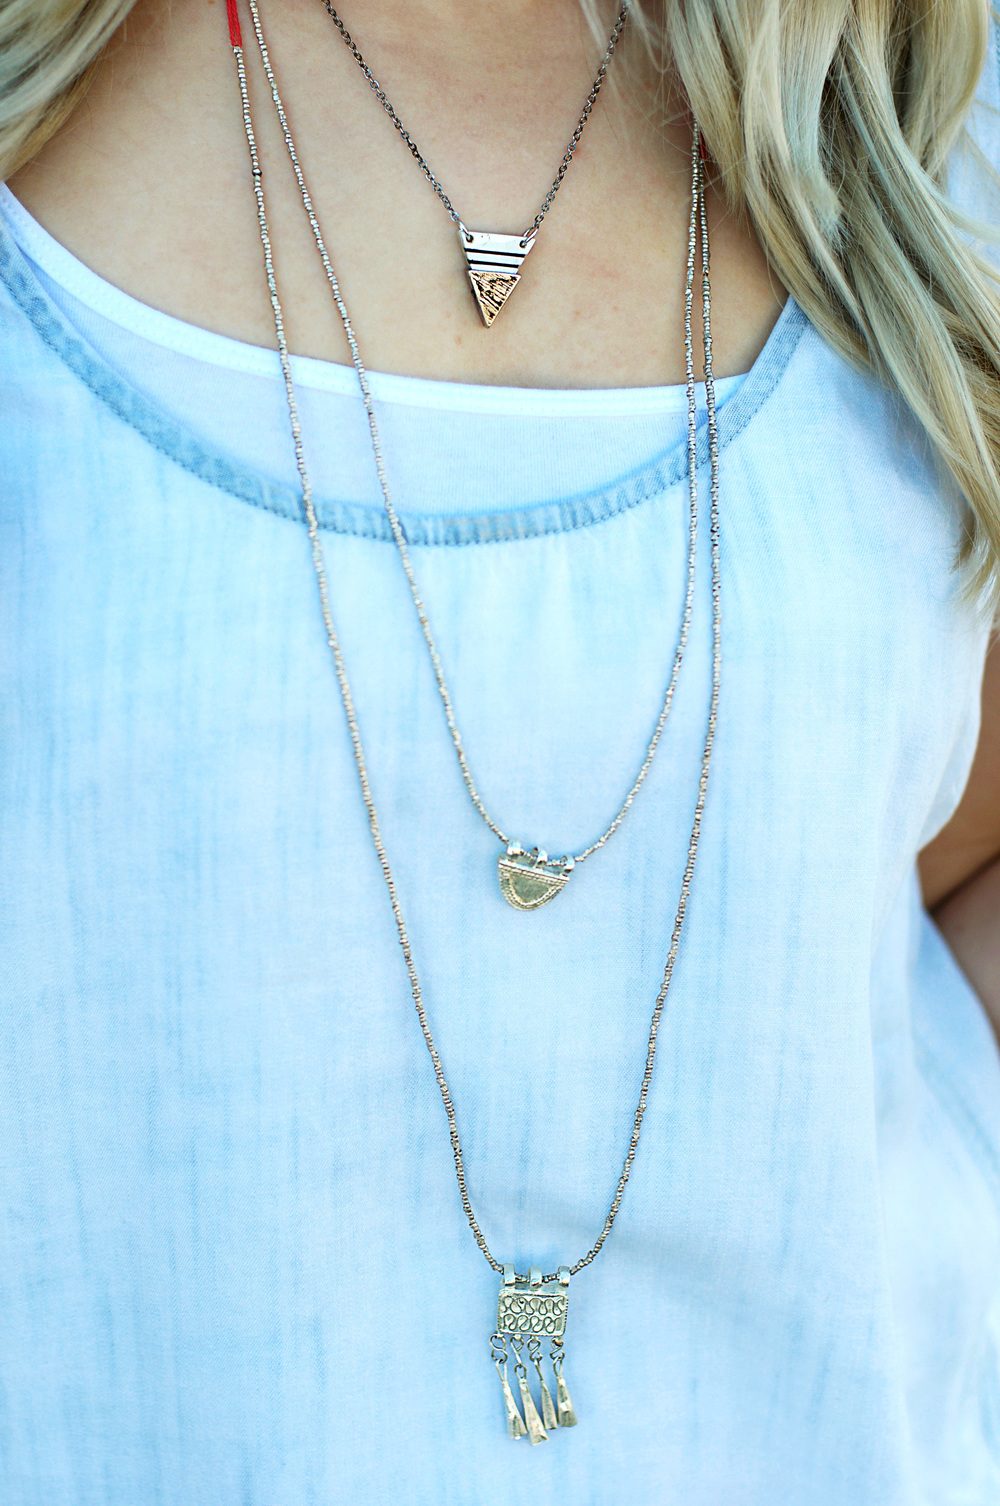 Noonday - Layered Silver Necklaces2.jpg